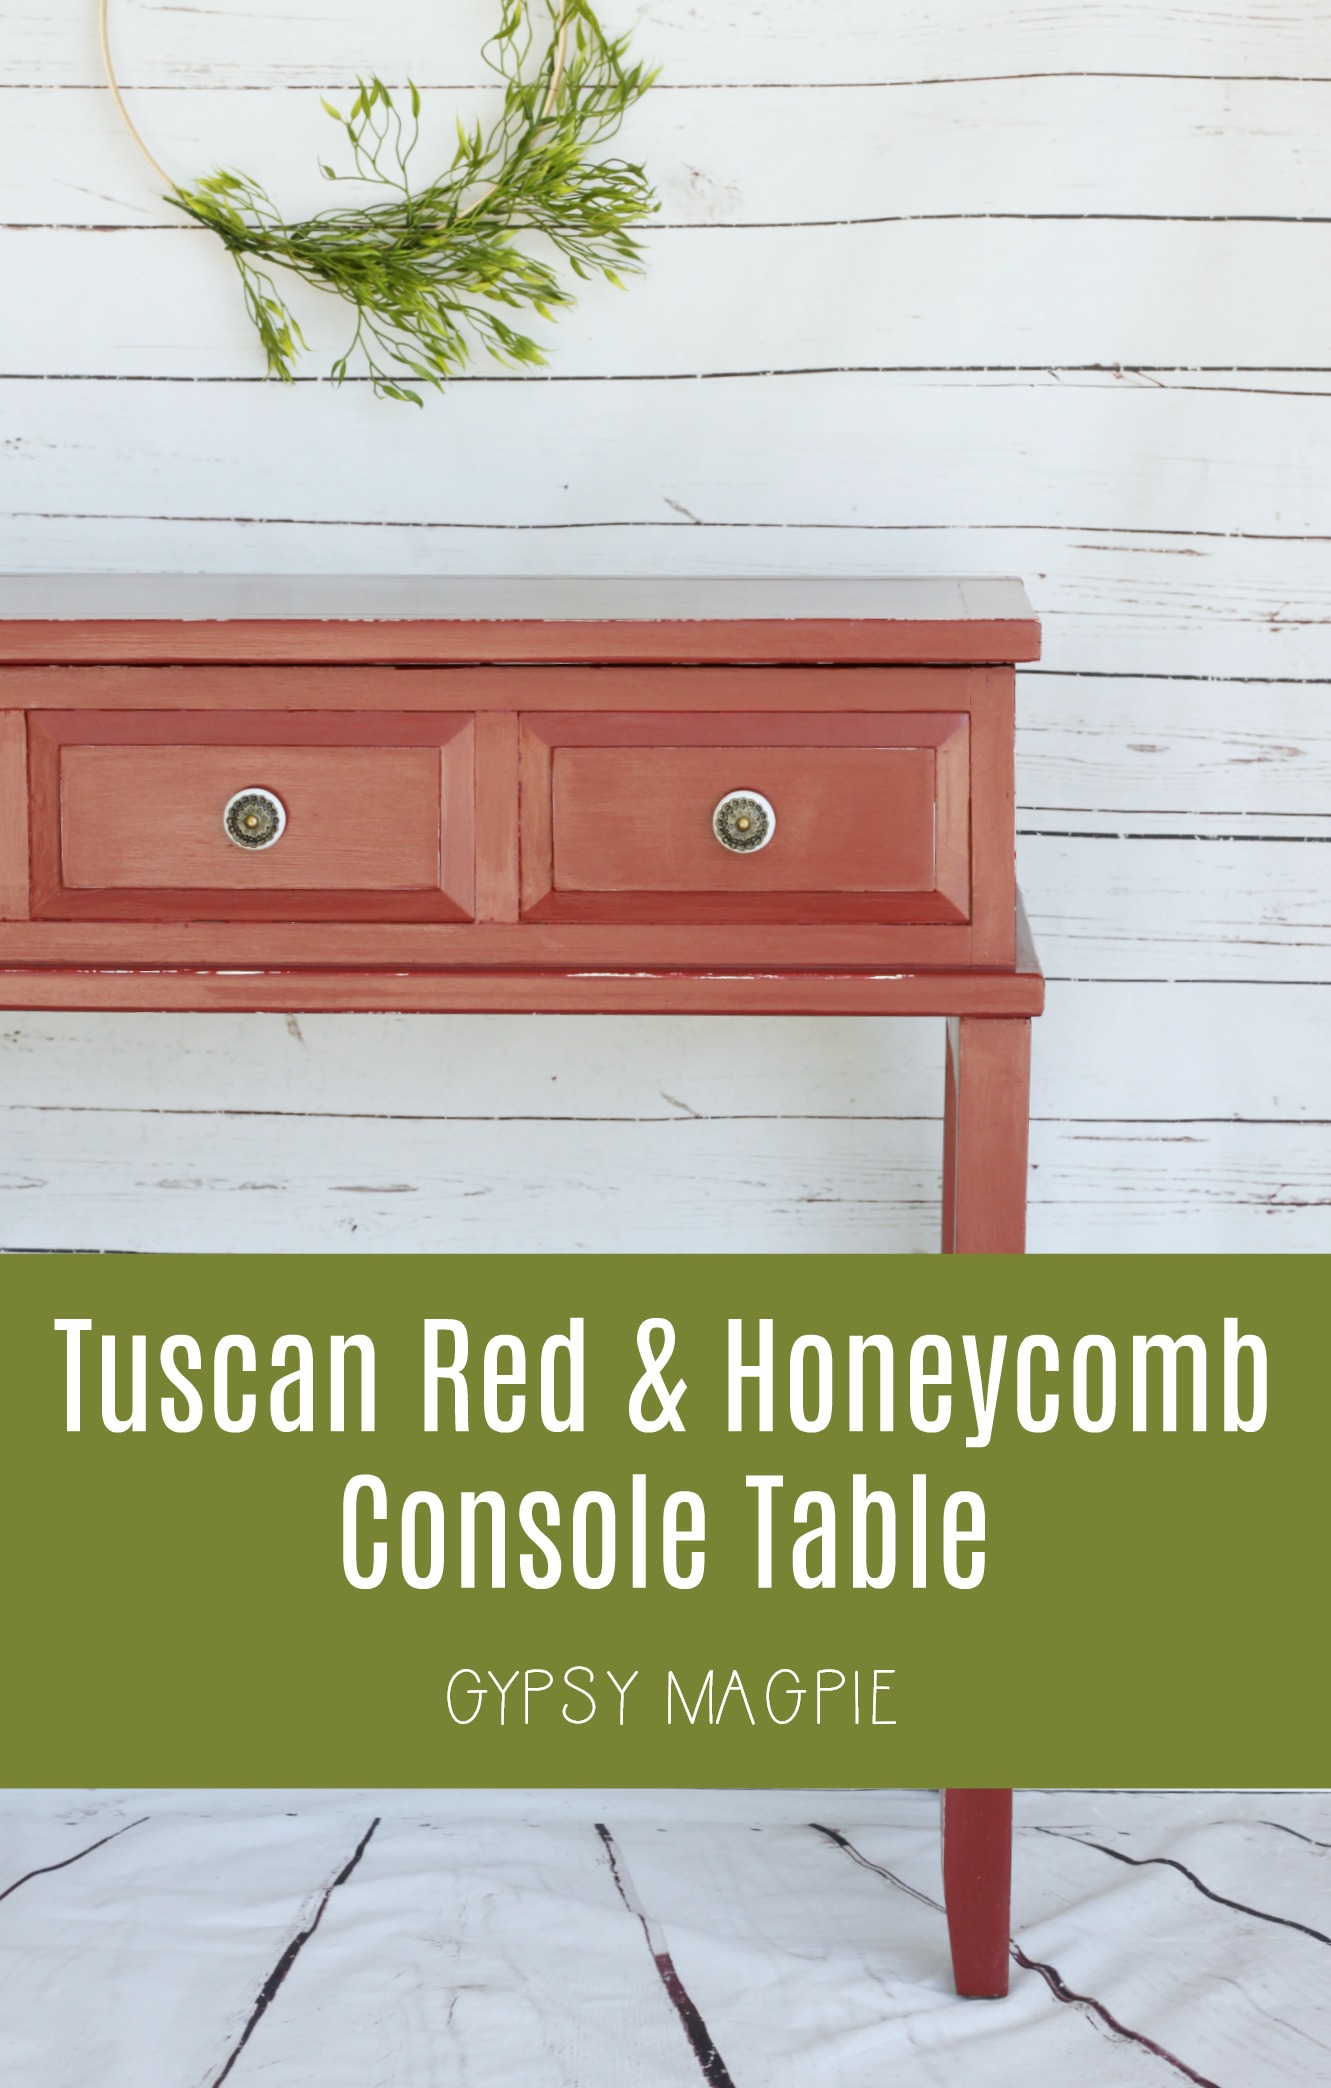 Tuscan Red & Honeycomb Console Table | Gypsy Magpie